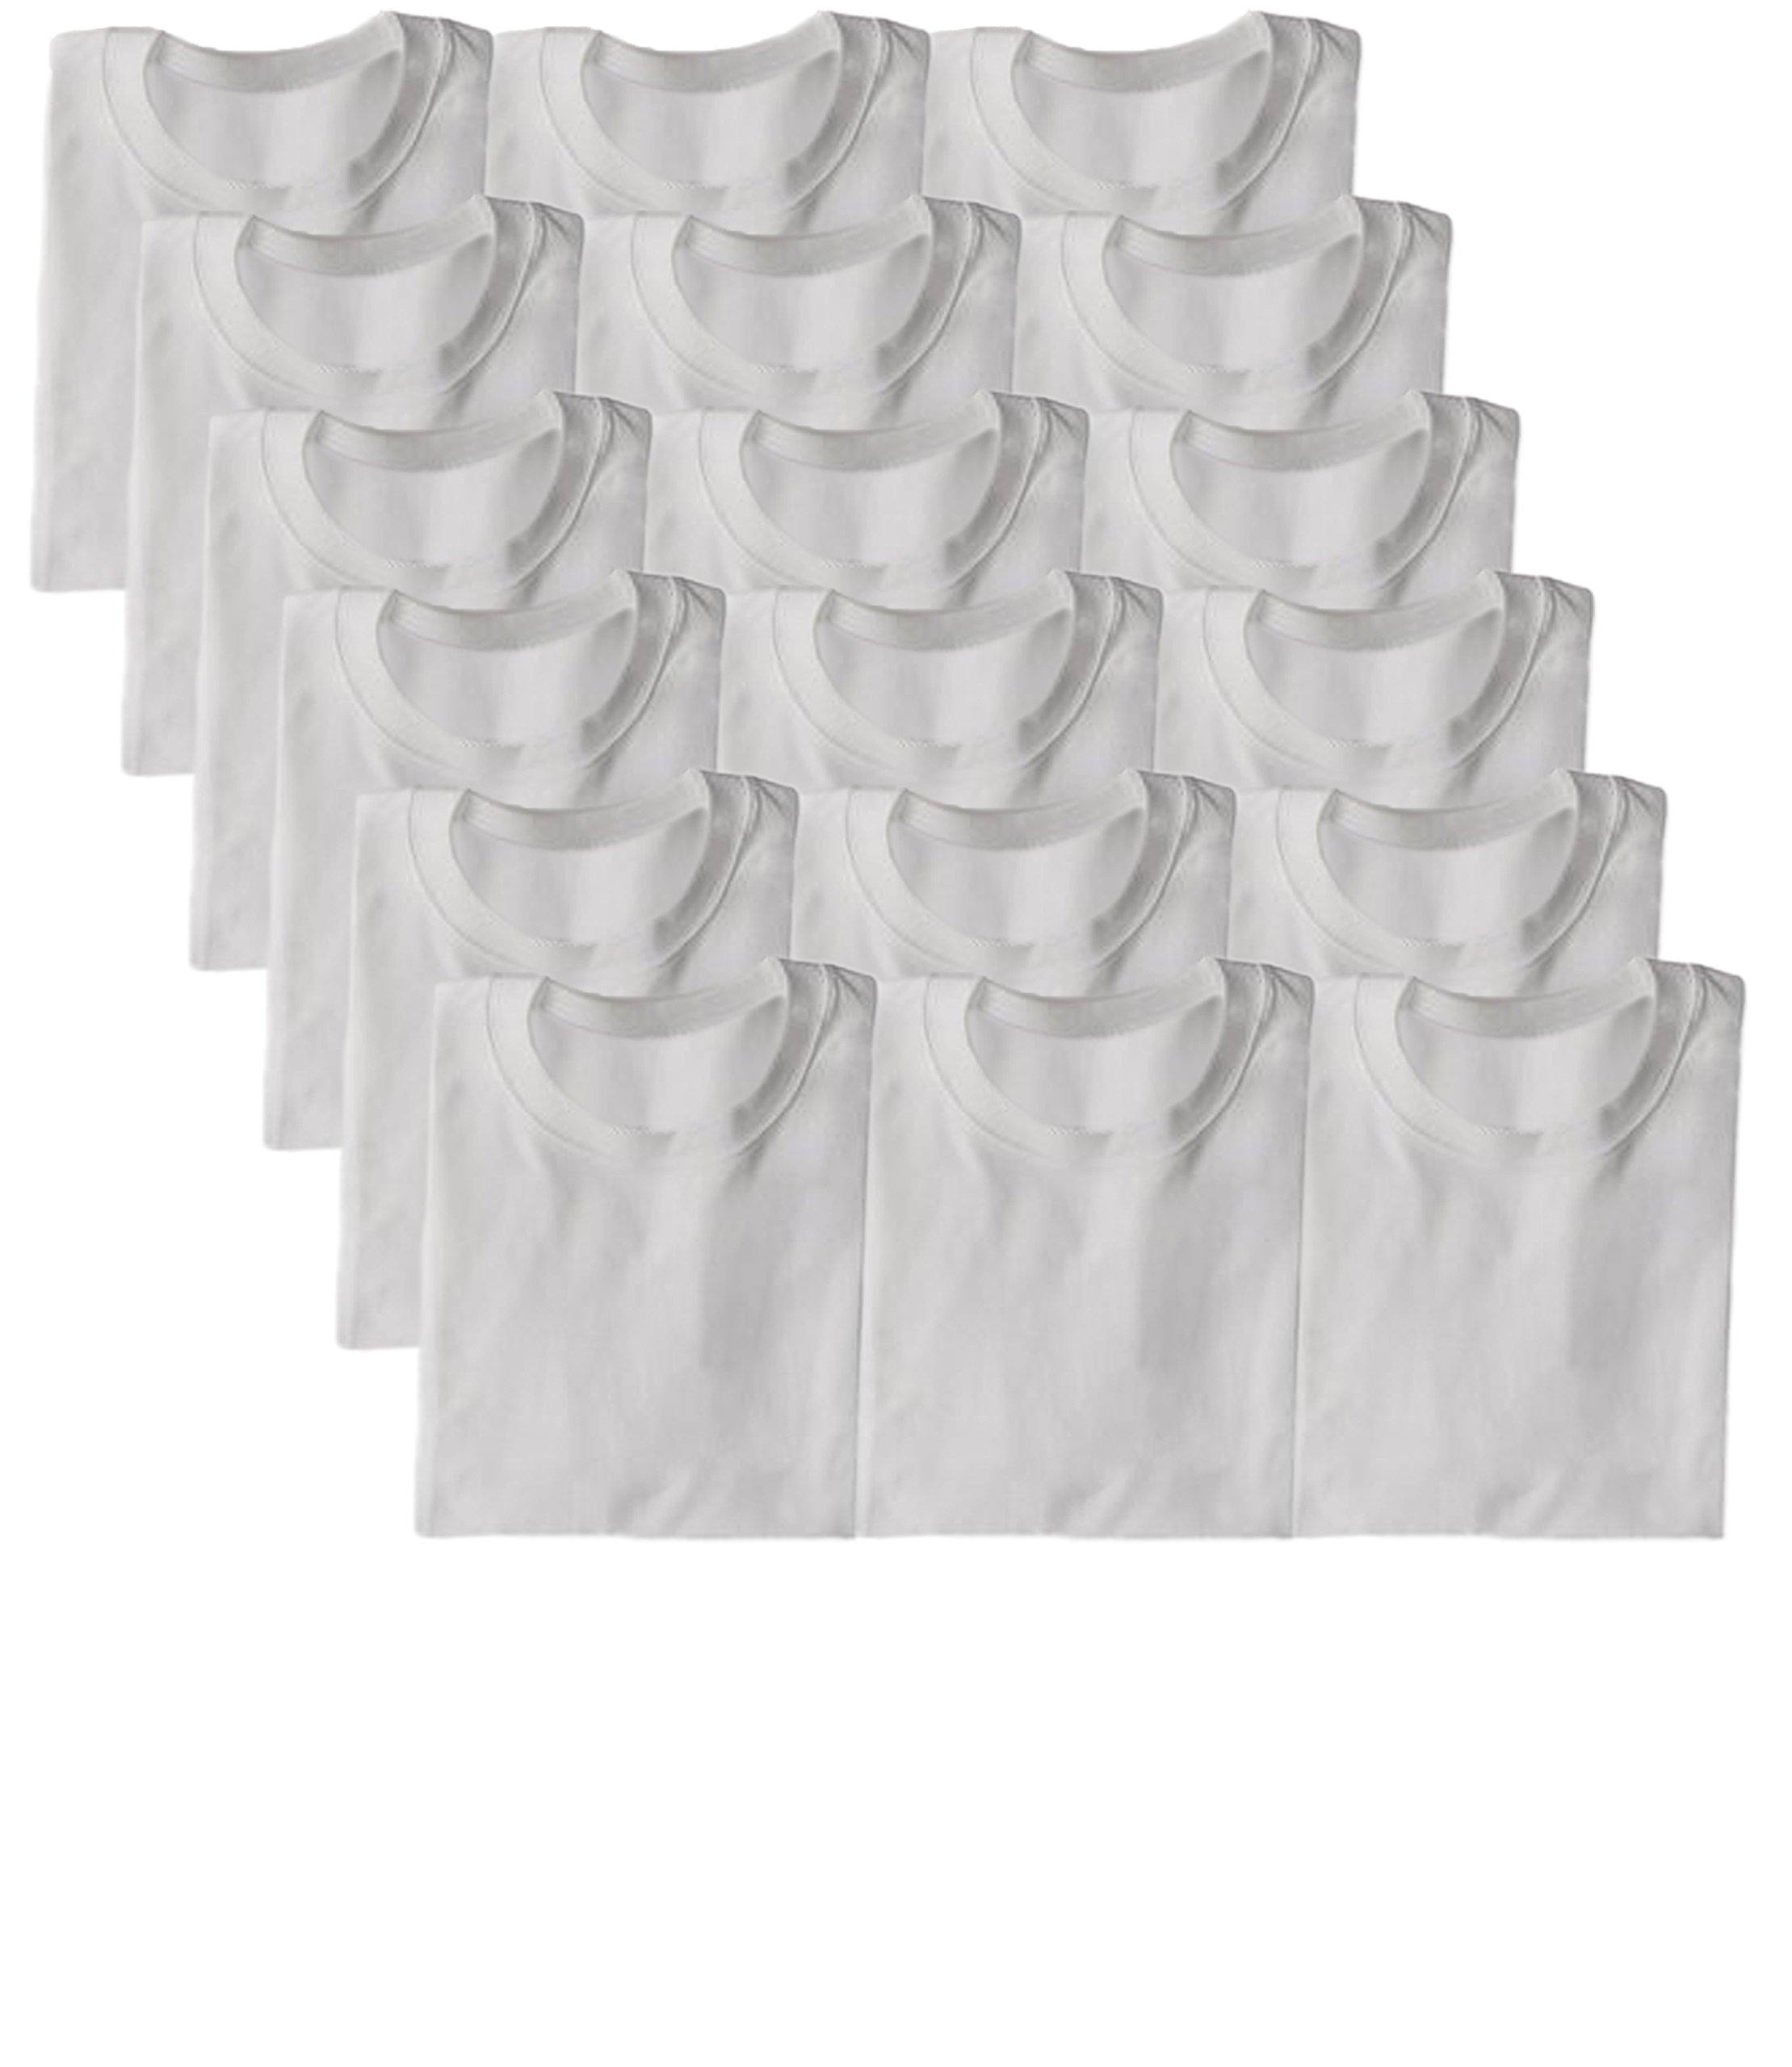 Joseph Abboud Boys Cotton Crew Neck T Shirt Undershirts - Bonus Pack of 18 (18 PK-White, X-Large)